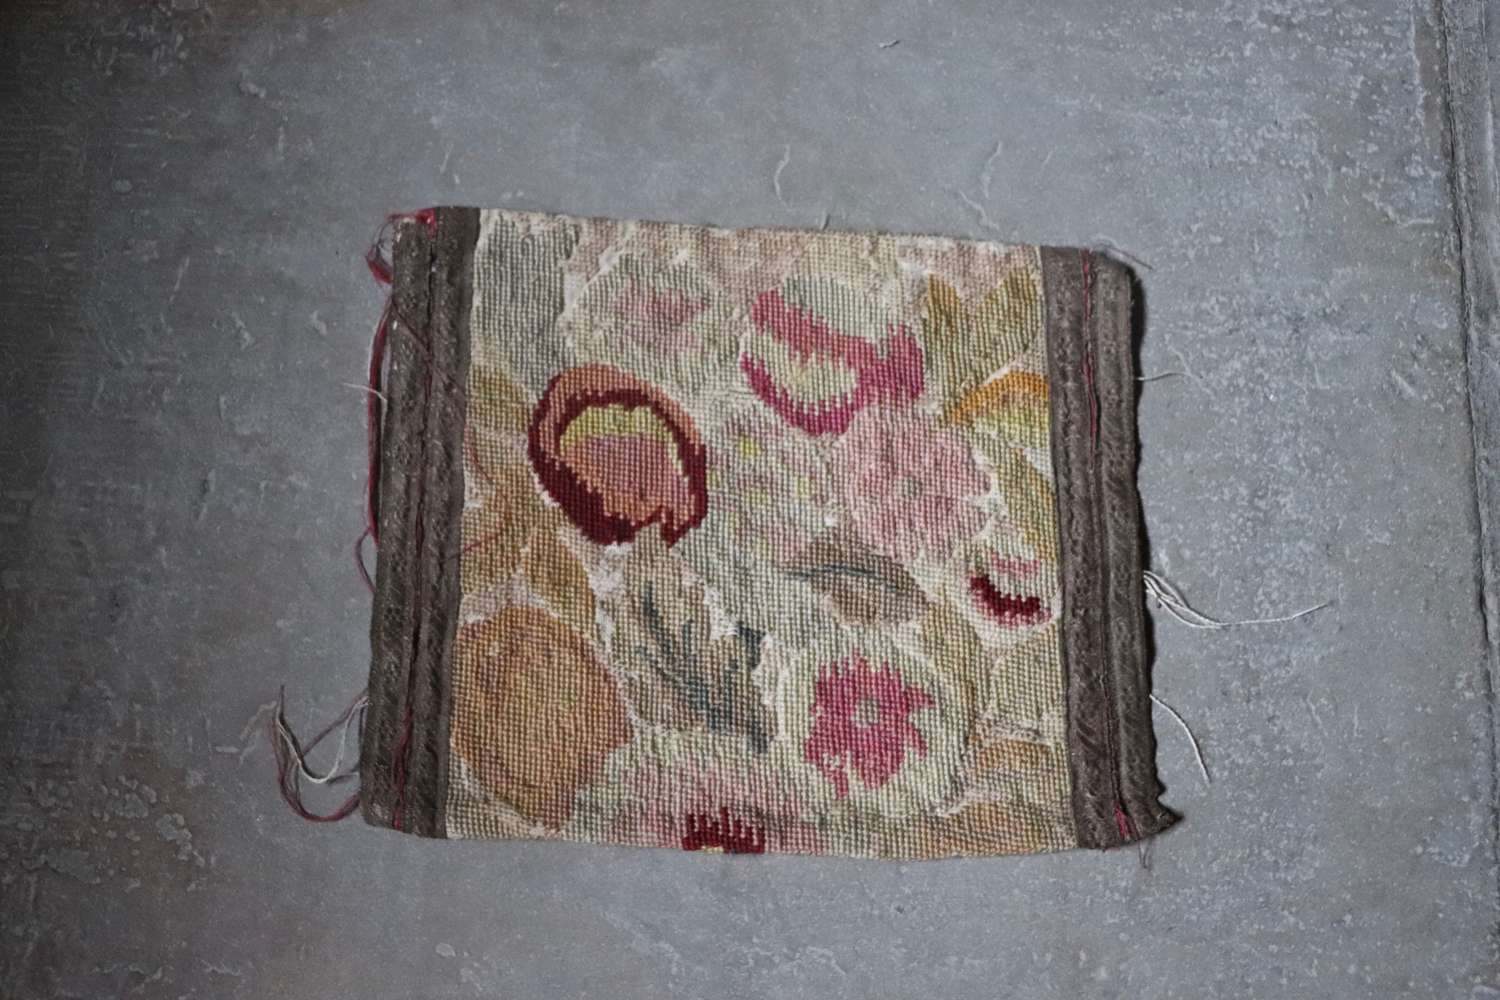 Early 19th century fabric fragment